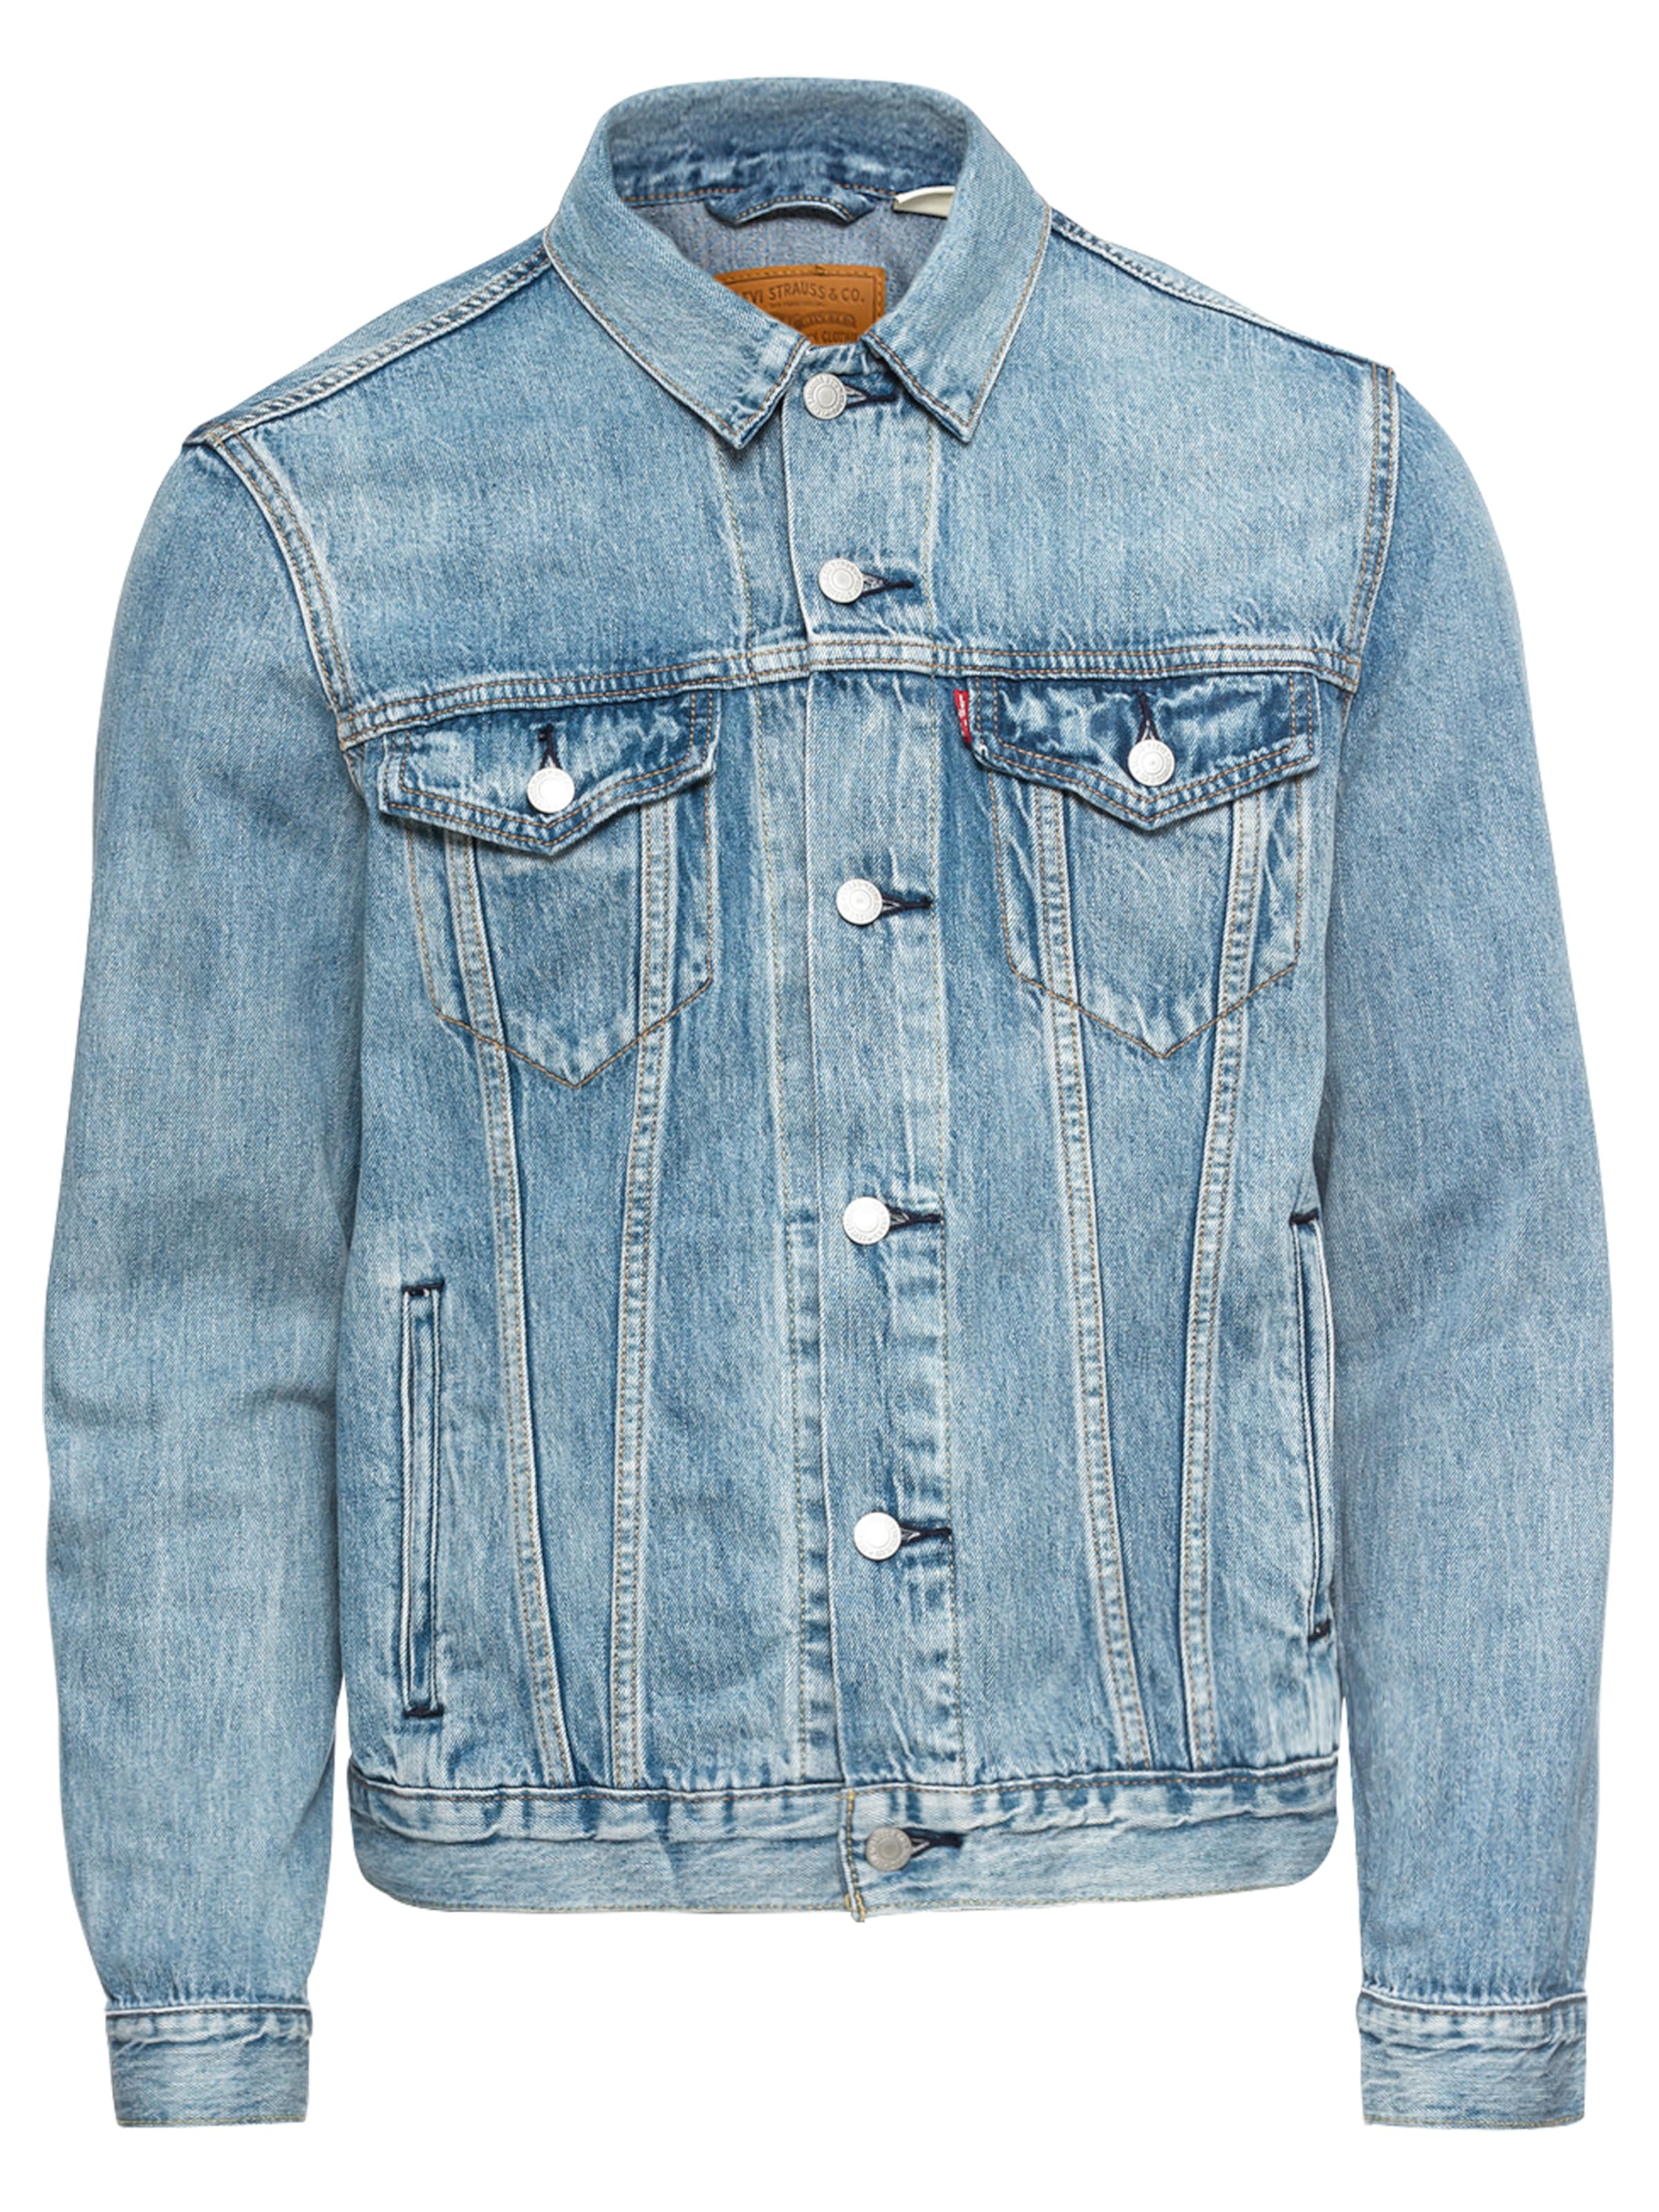 In Levi's Trucker' 'the Jacke Denim Blue nN8wm0